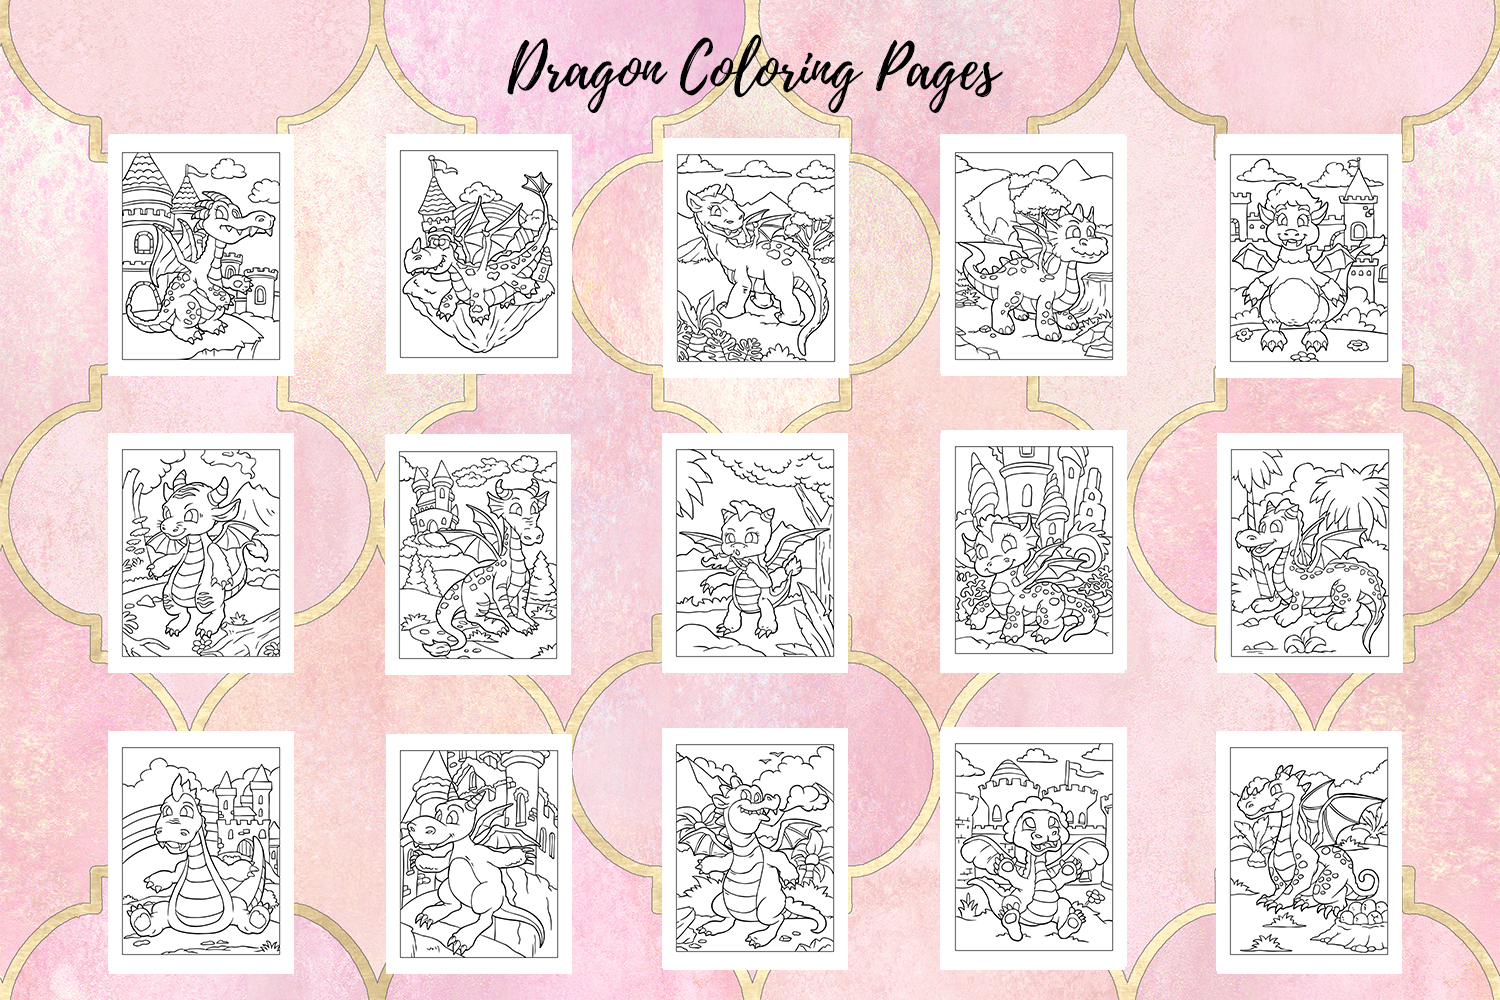 Coloring Pages For Kids - 15 Dragon Coloring Pages example image 2